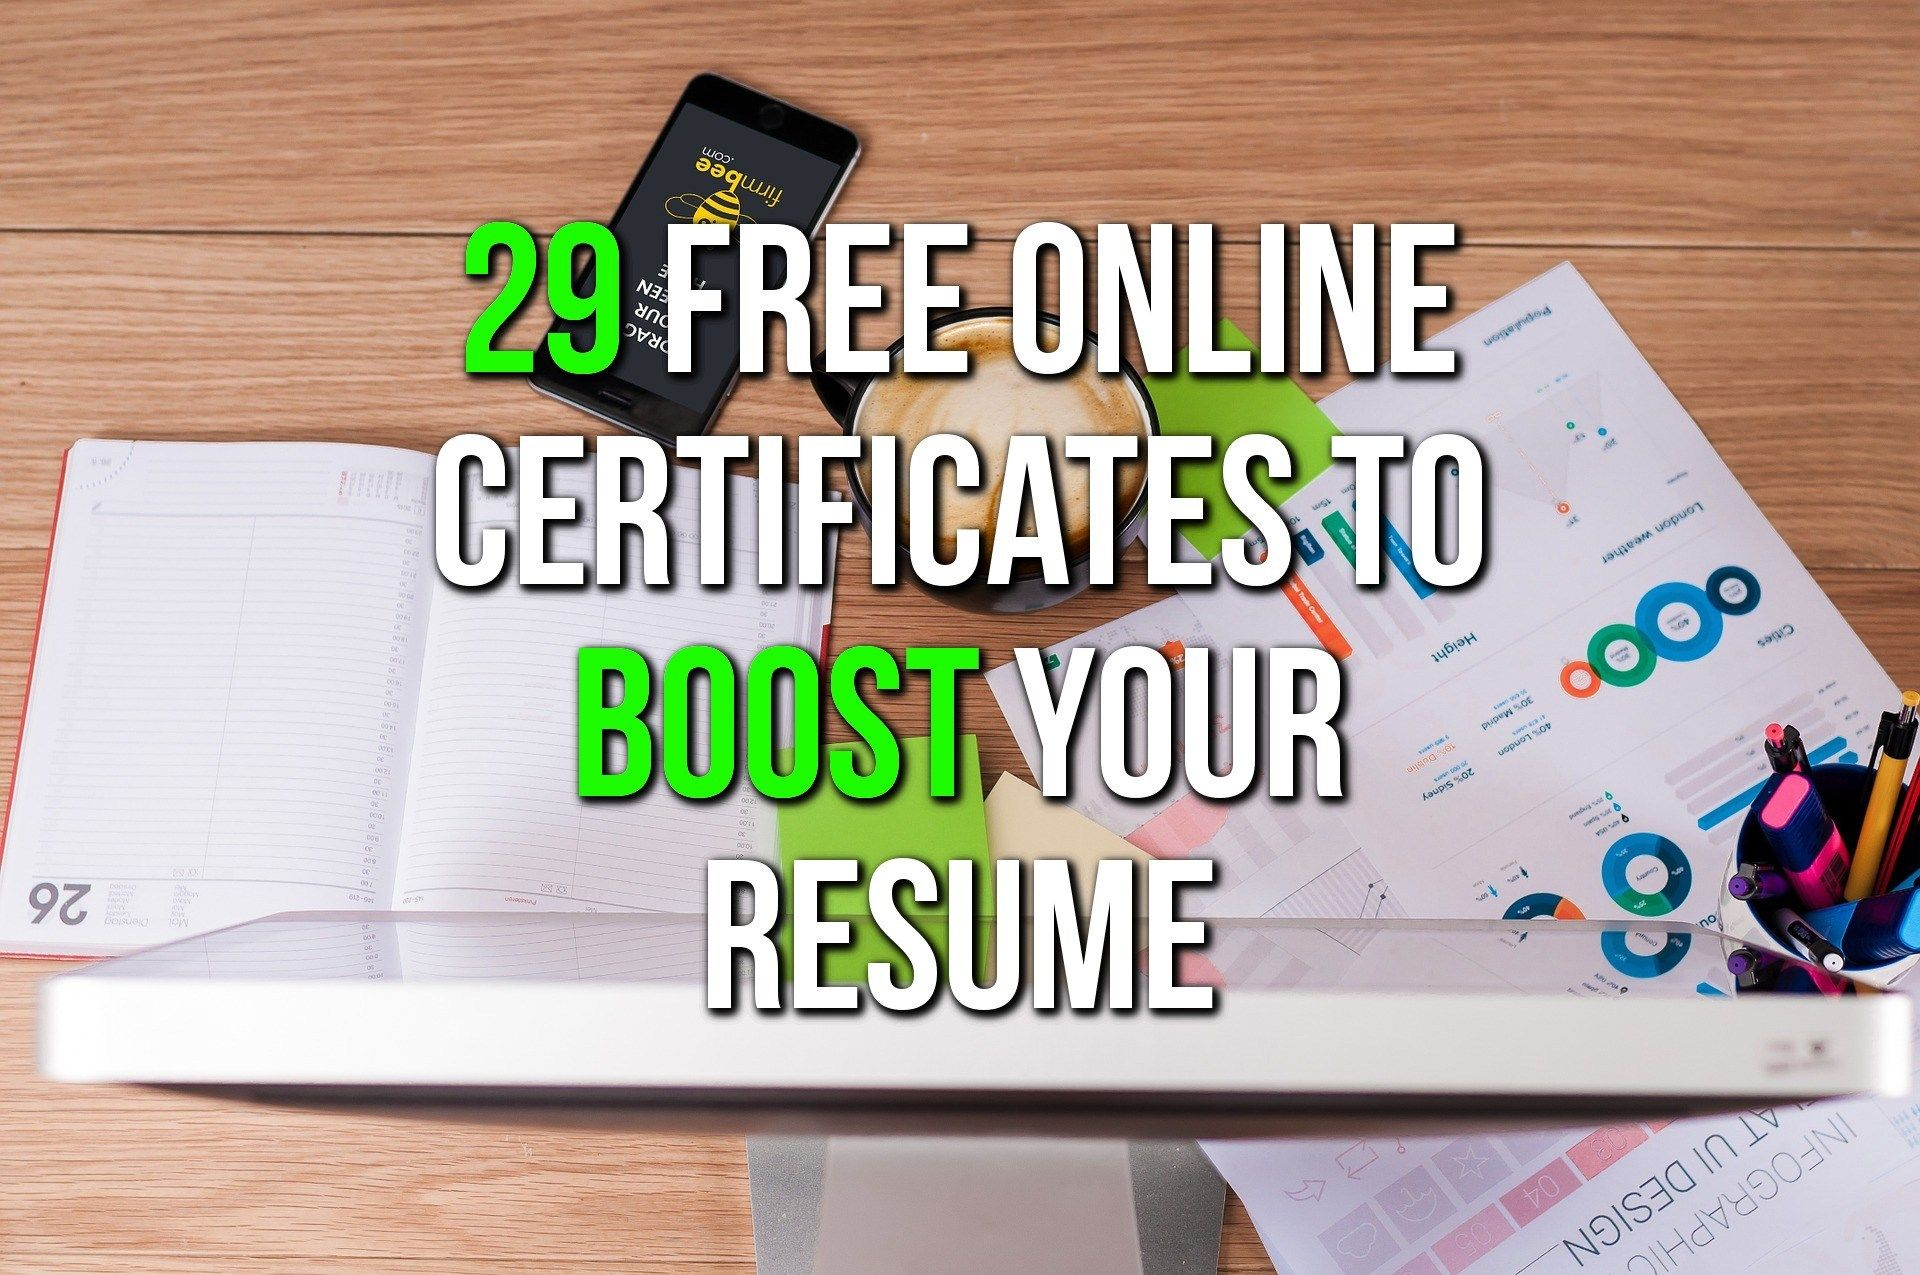 Free Online Courses With Certificates CV Building